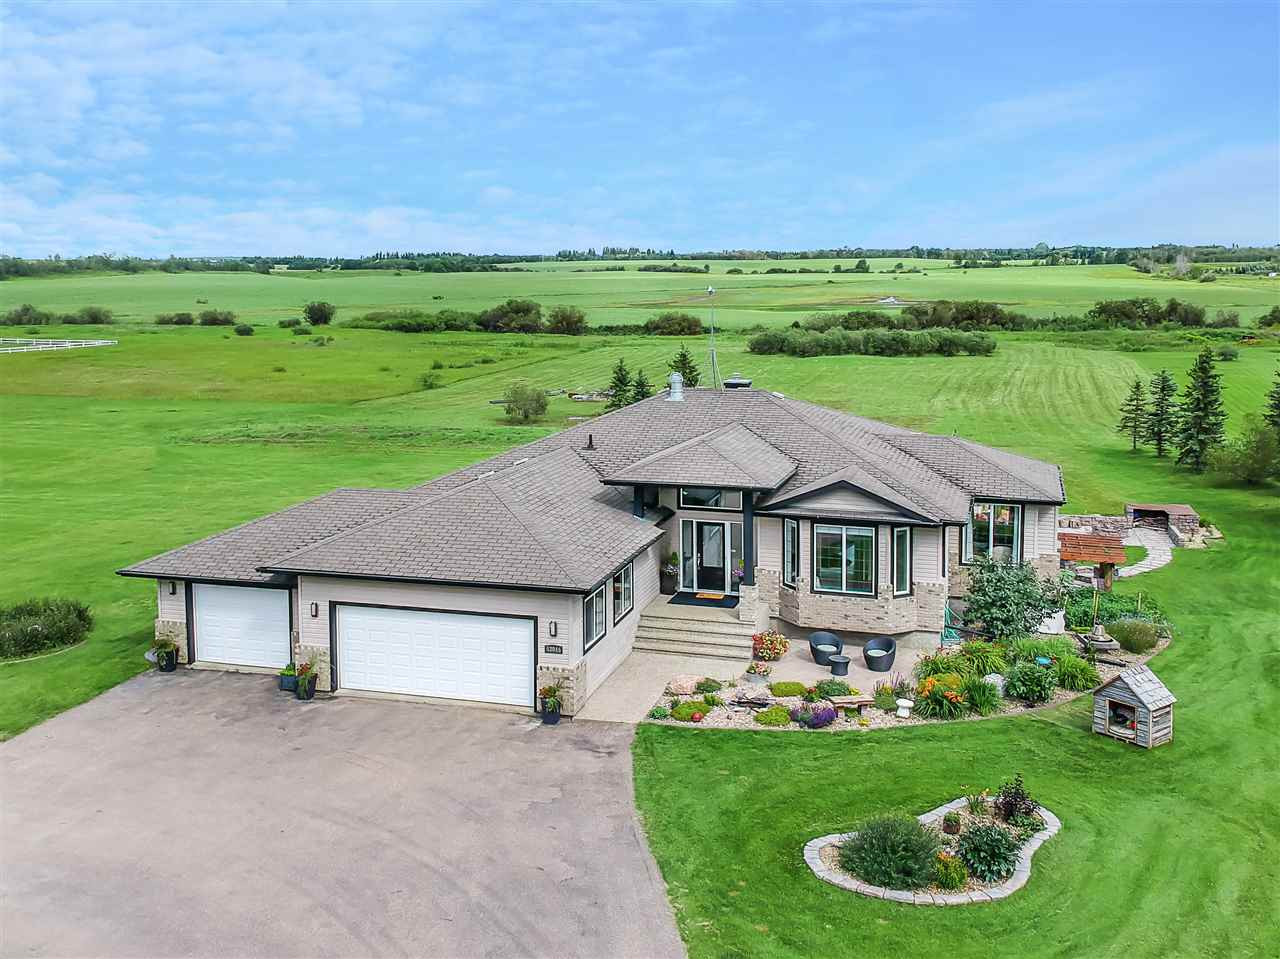 MLS® listing #E4169739 for sale located at 53045 RGE RD 225